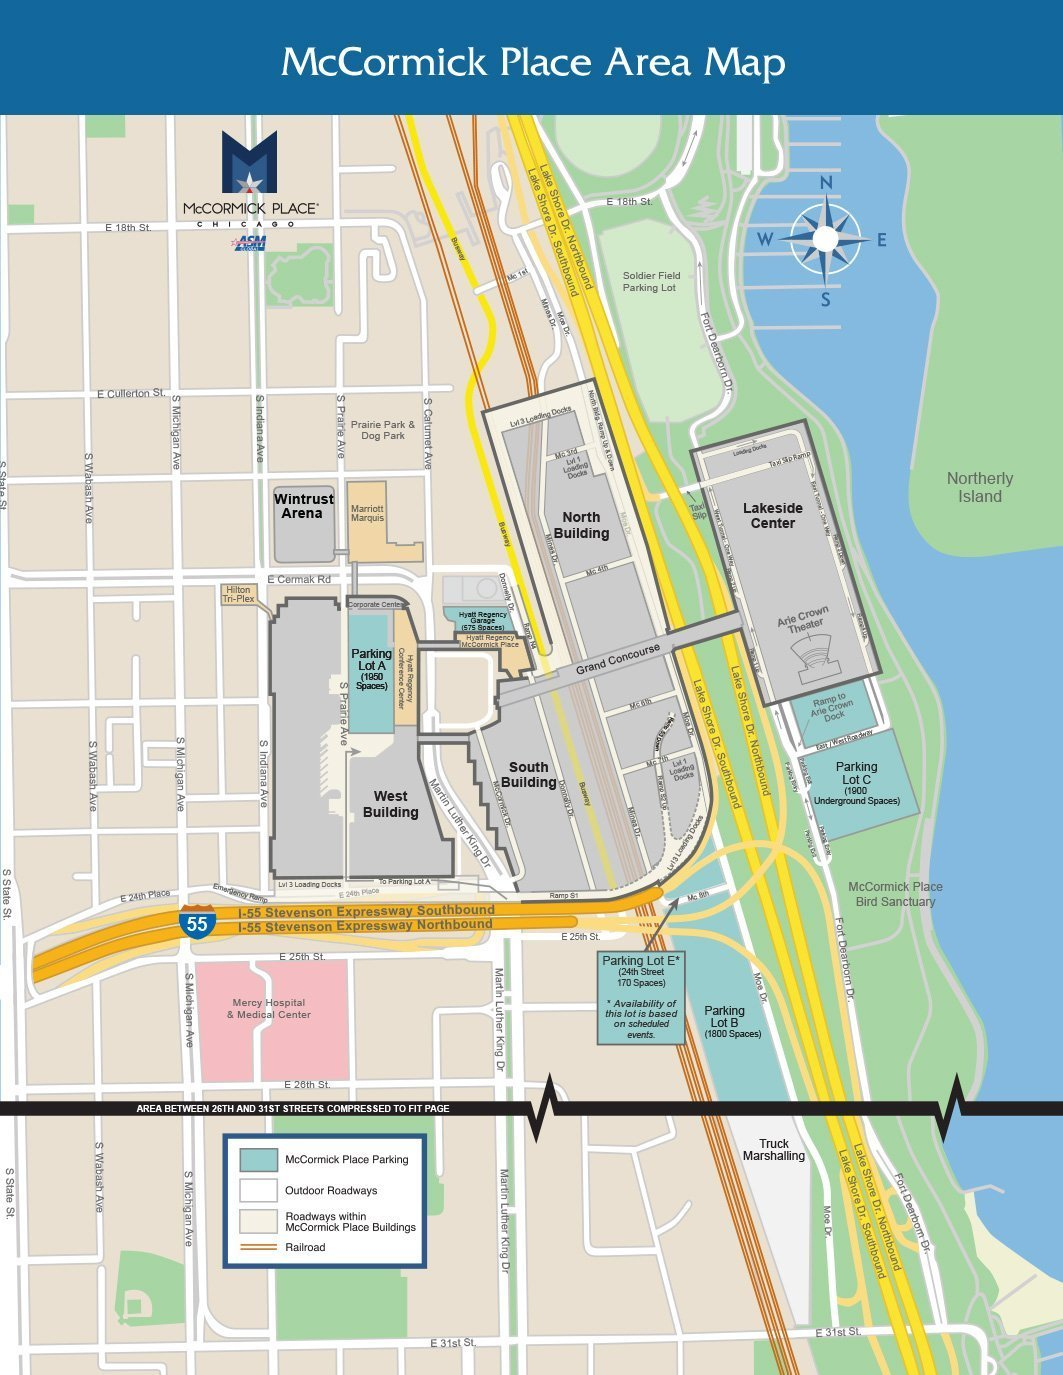 Parking & Rates - McCormick Place